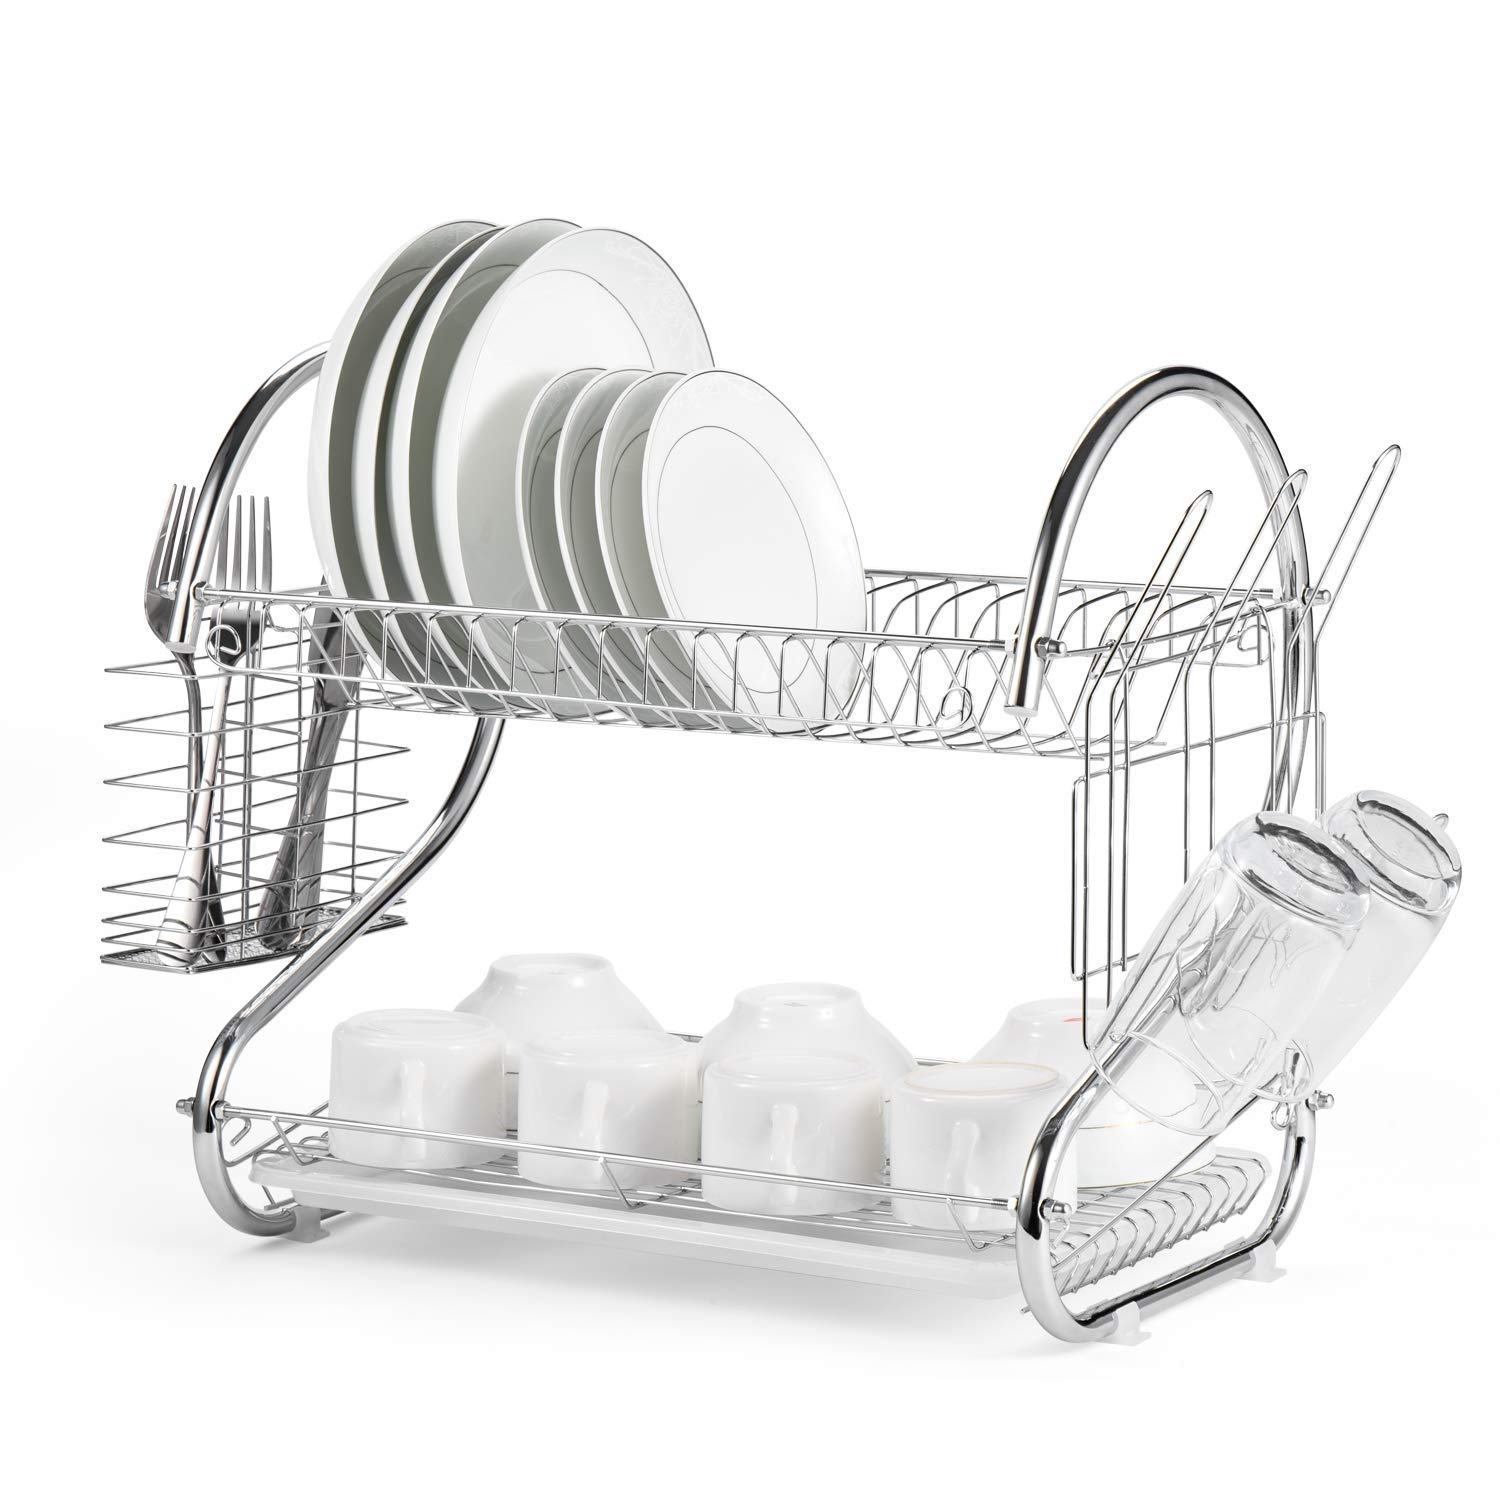 Fashine Multifunctional Dish Drying Rack, 2 Tier Dish Rack with Utensil Holder, Cup Holder and Dish Drainer, Plated Chrome Dish Dryer 15.74 x 14.57 x 9.84 inch